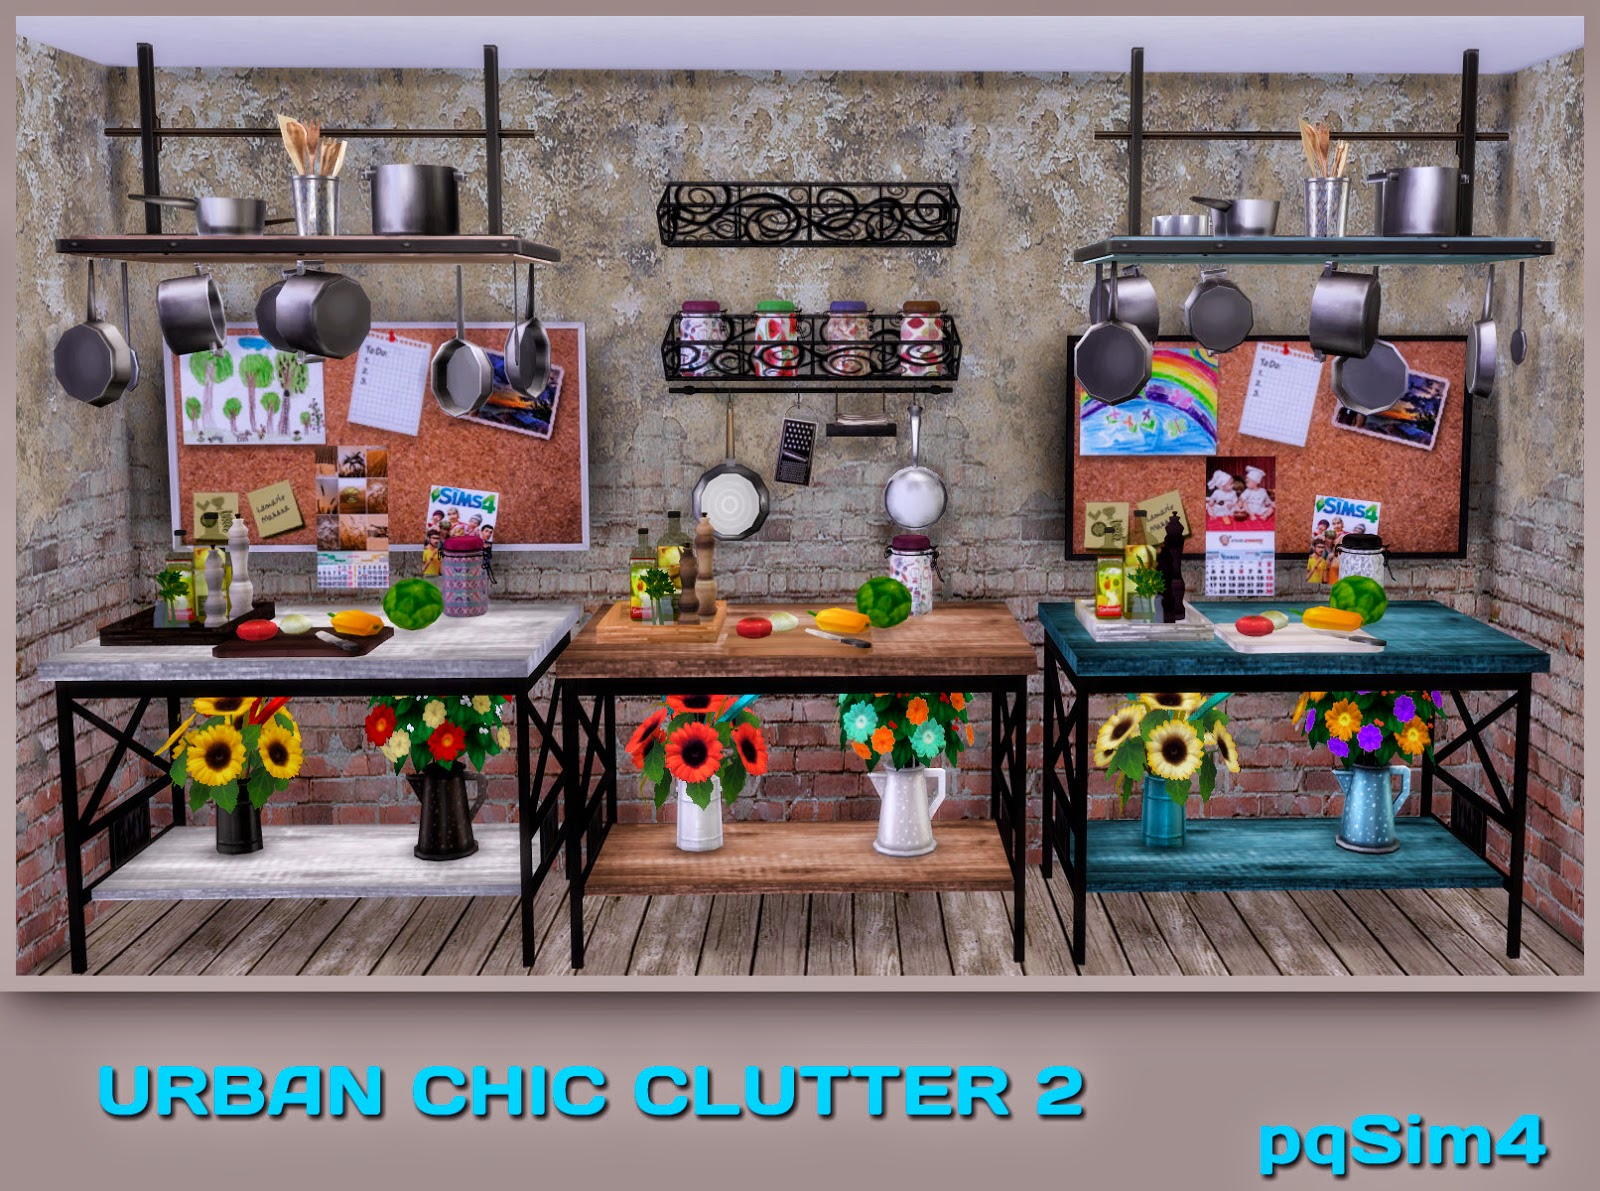 Urban Chic Clutter 2 Sims 4 Custom Content